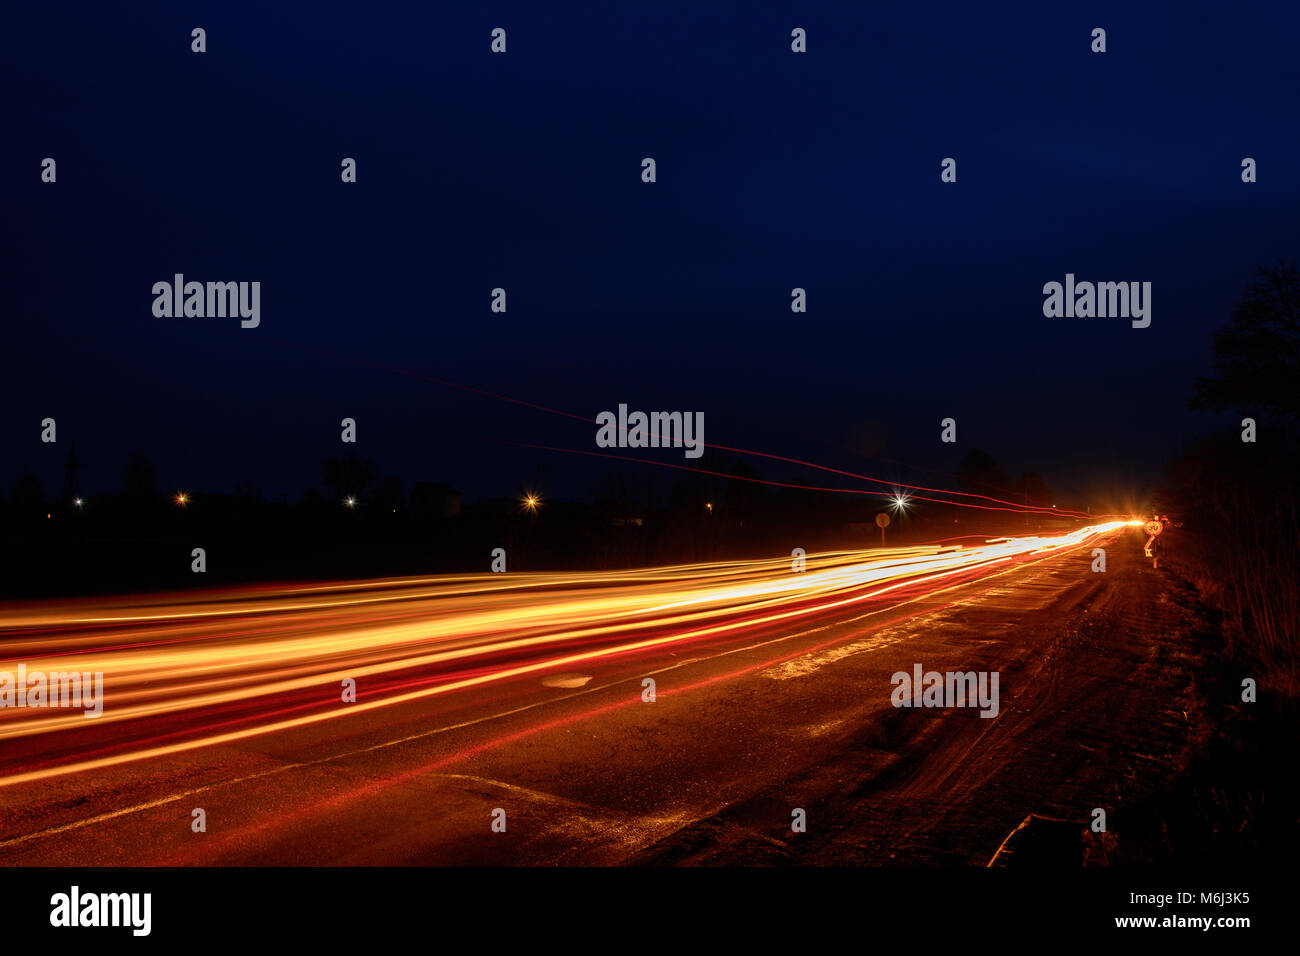 Photos of Ukrainian roads under the evening sky, on which cars are moving and blurring the way with their light - Stock Image